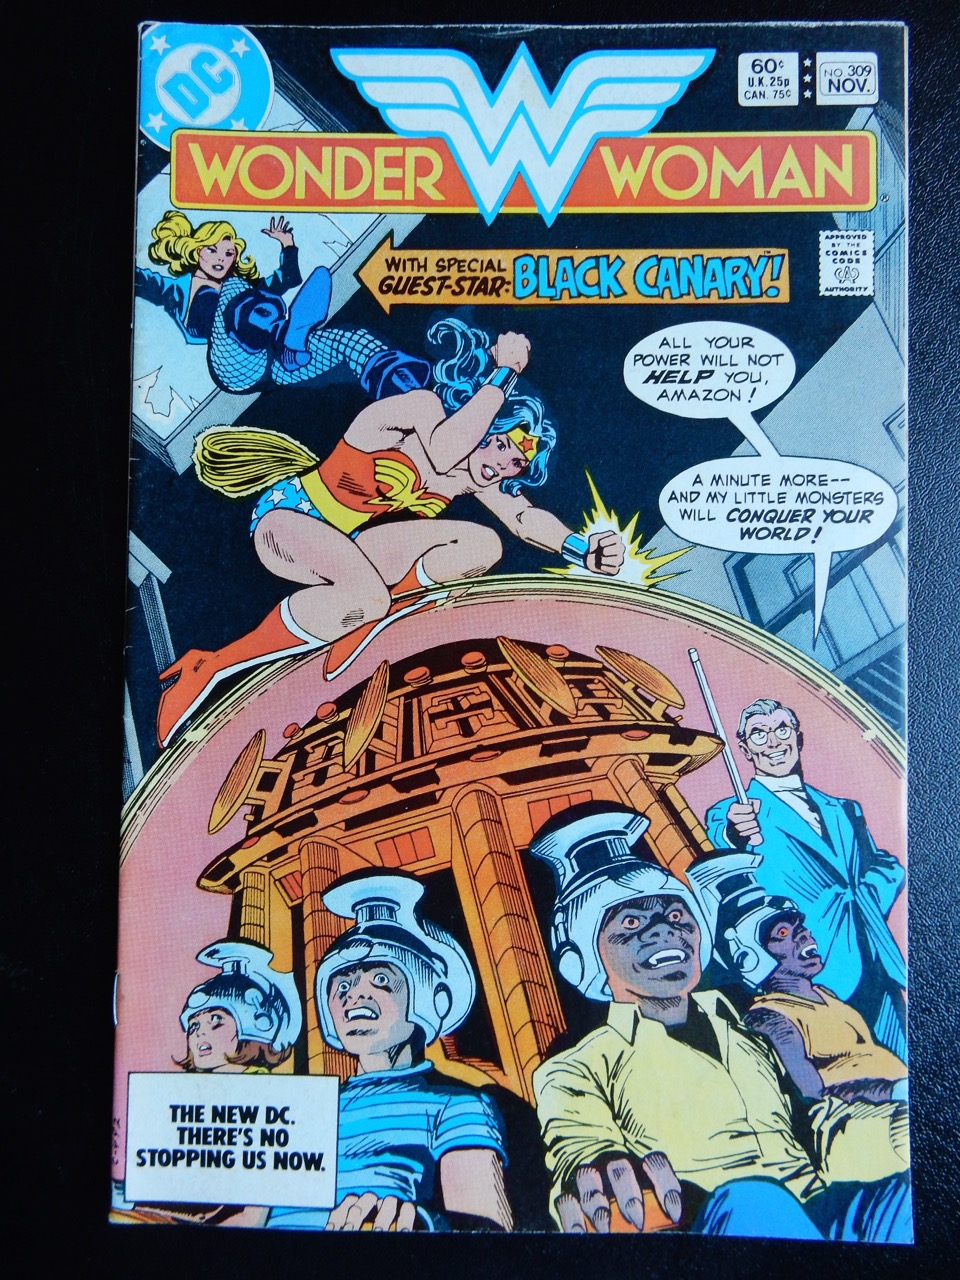 Wonder Woman #309 with Black Canary